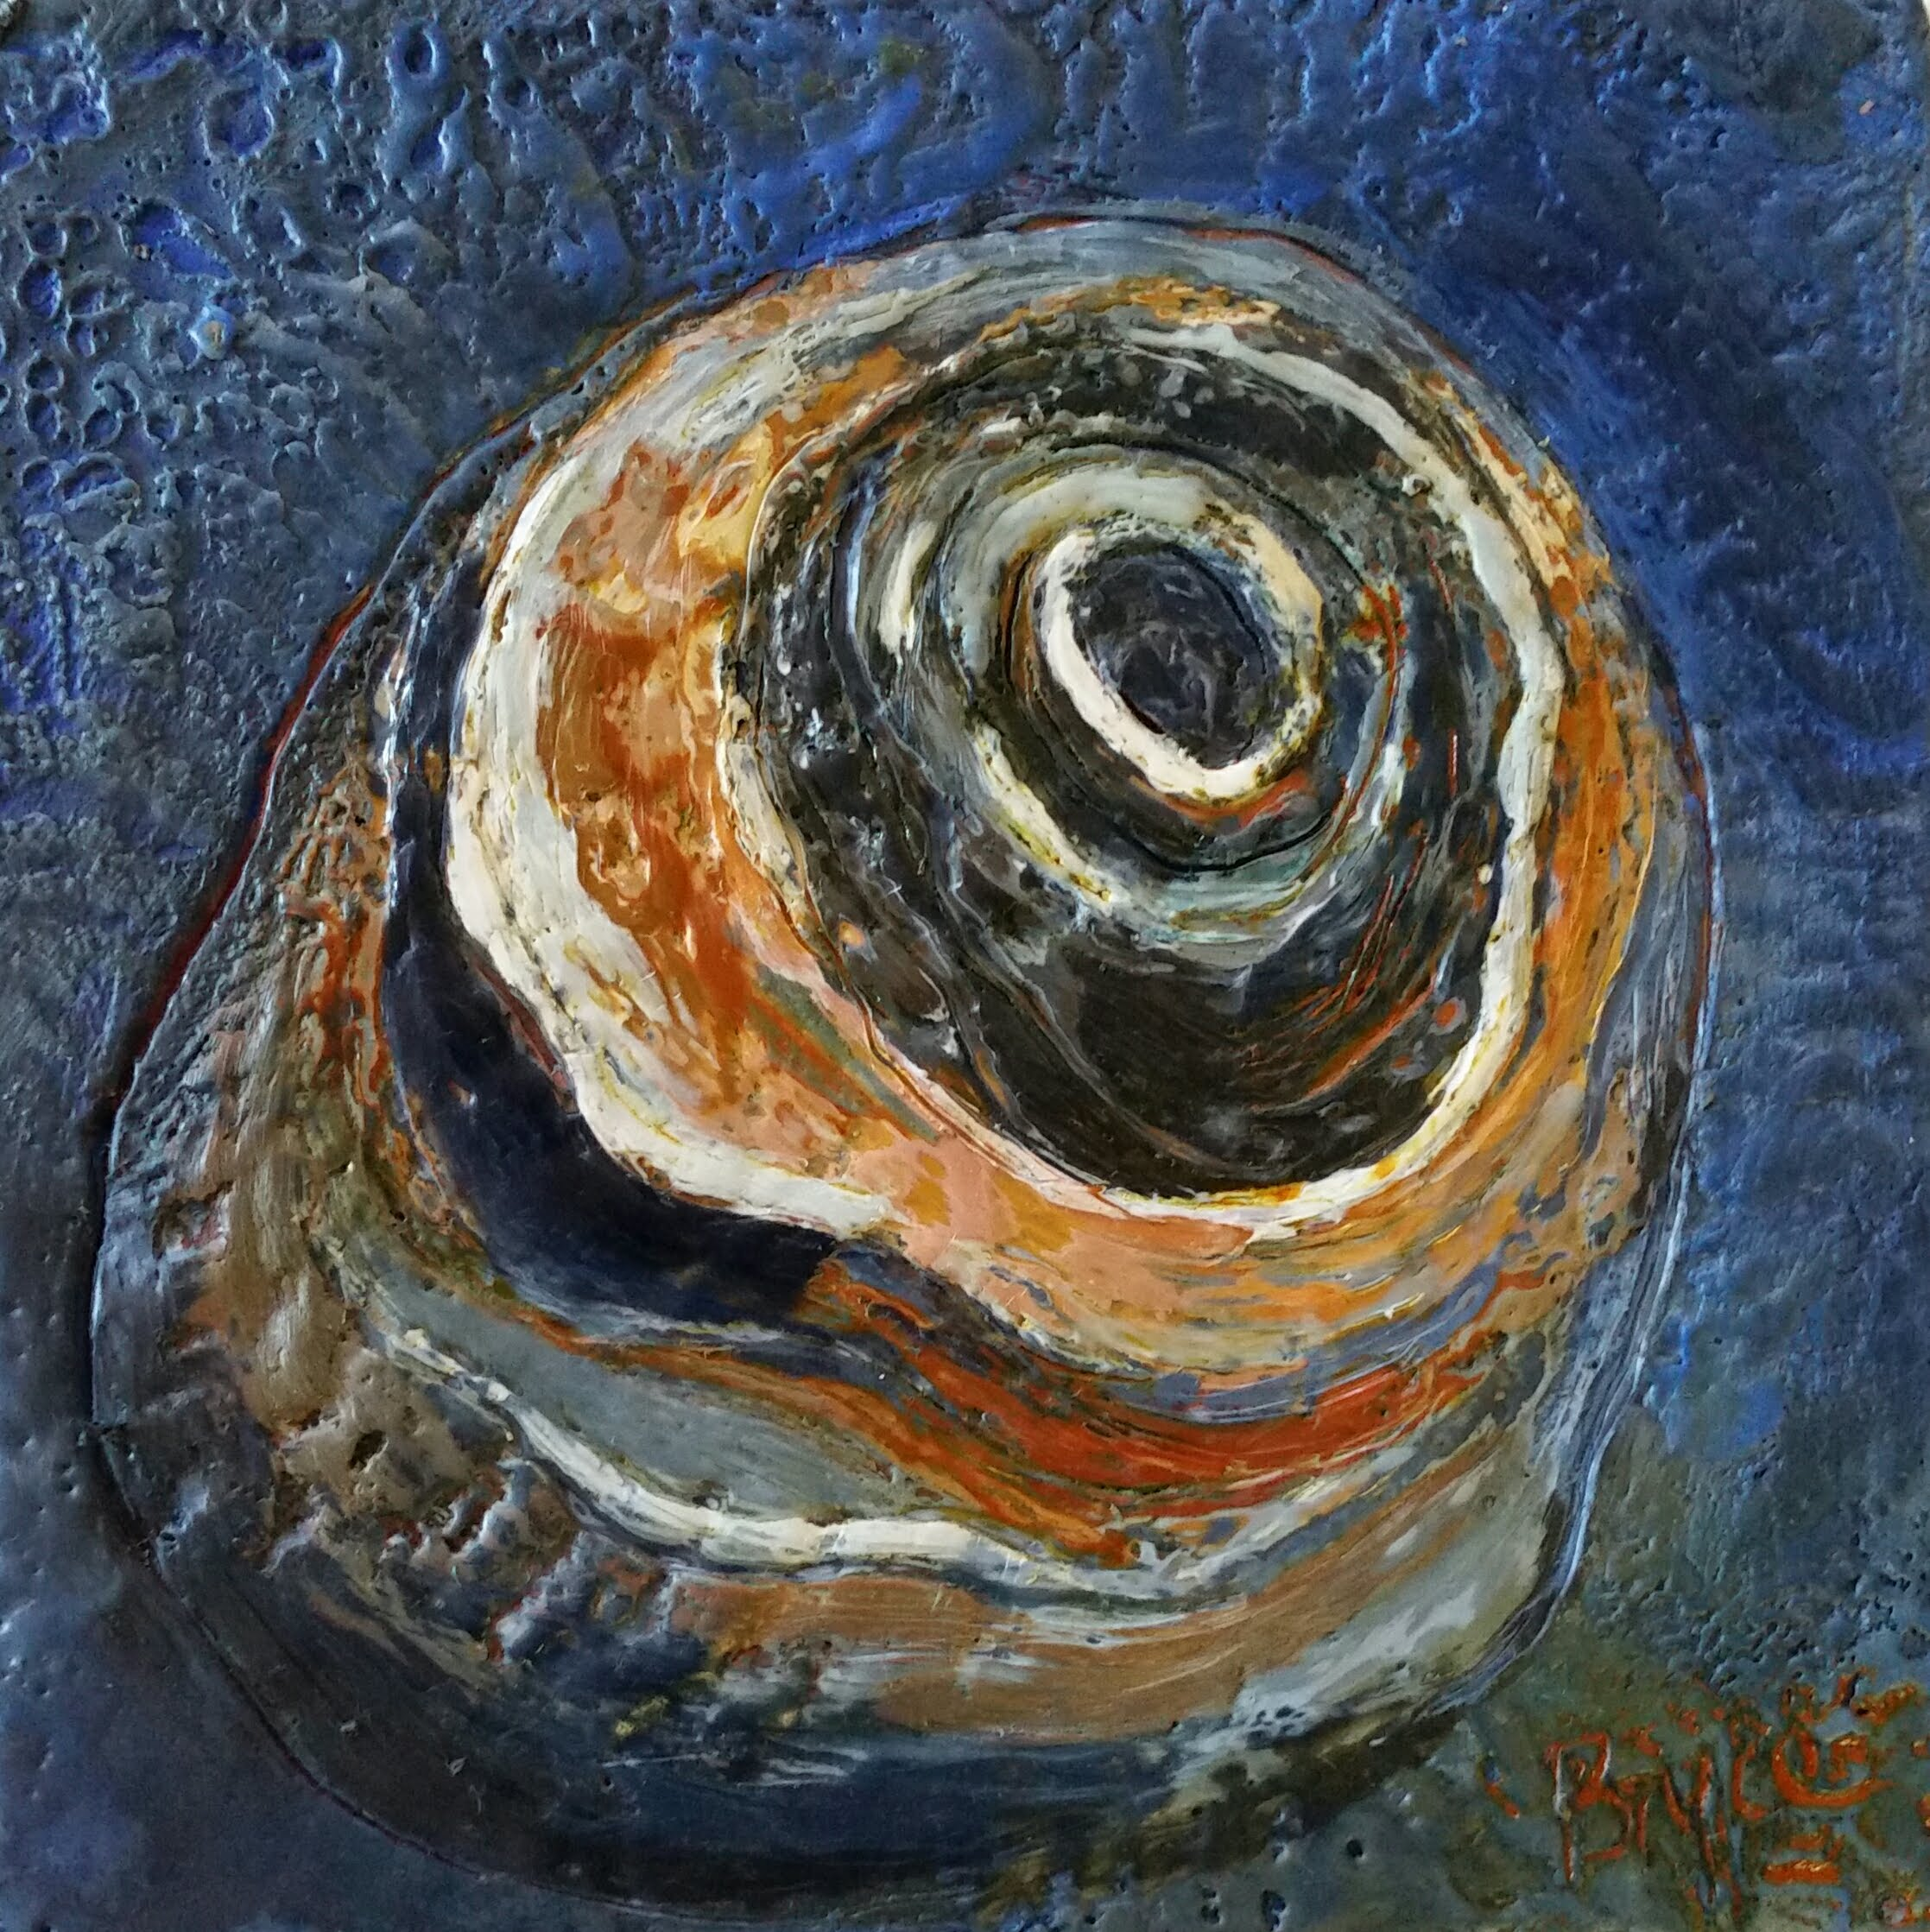 ROCKS I HAVE KNOWN: CONCENTRIC